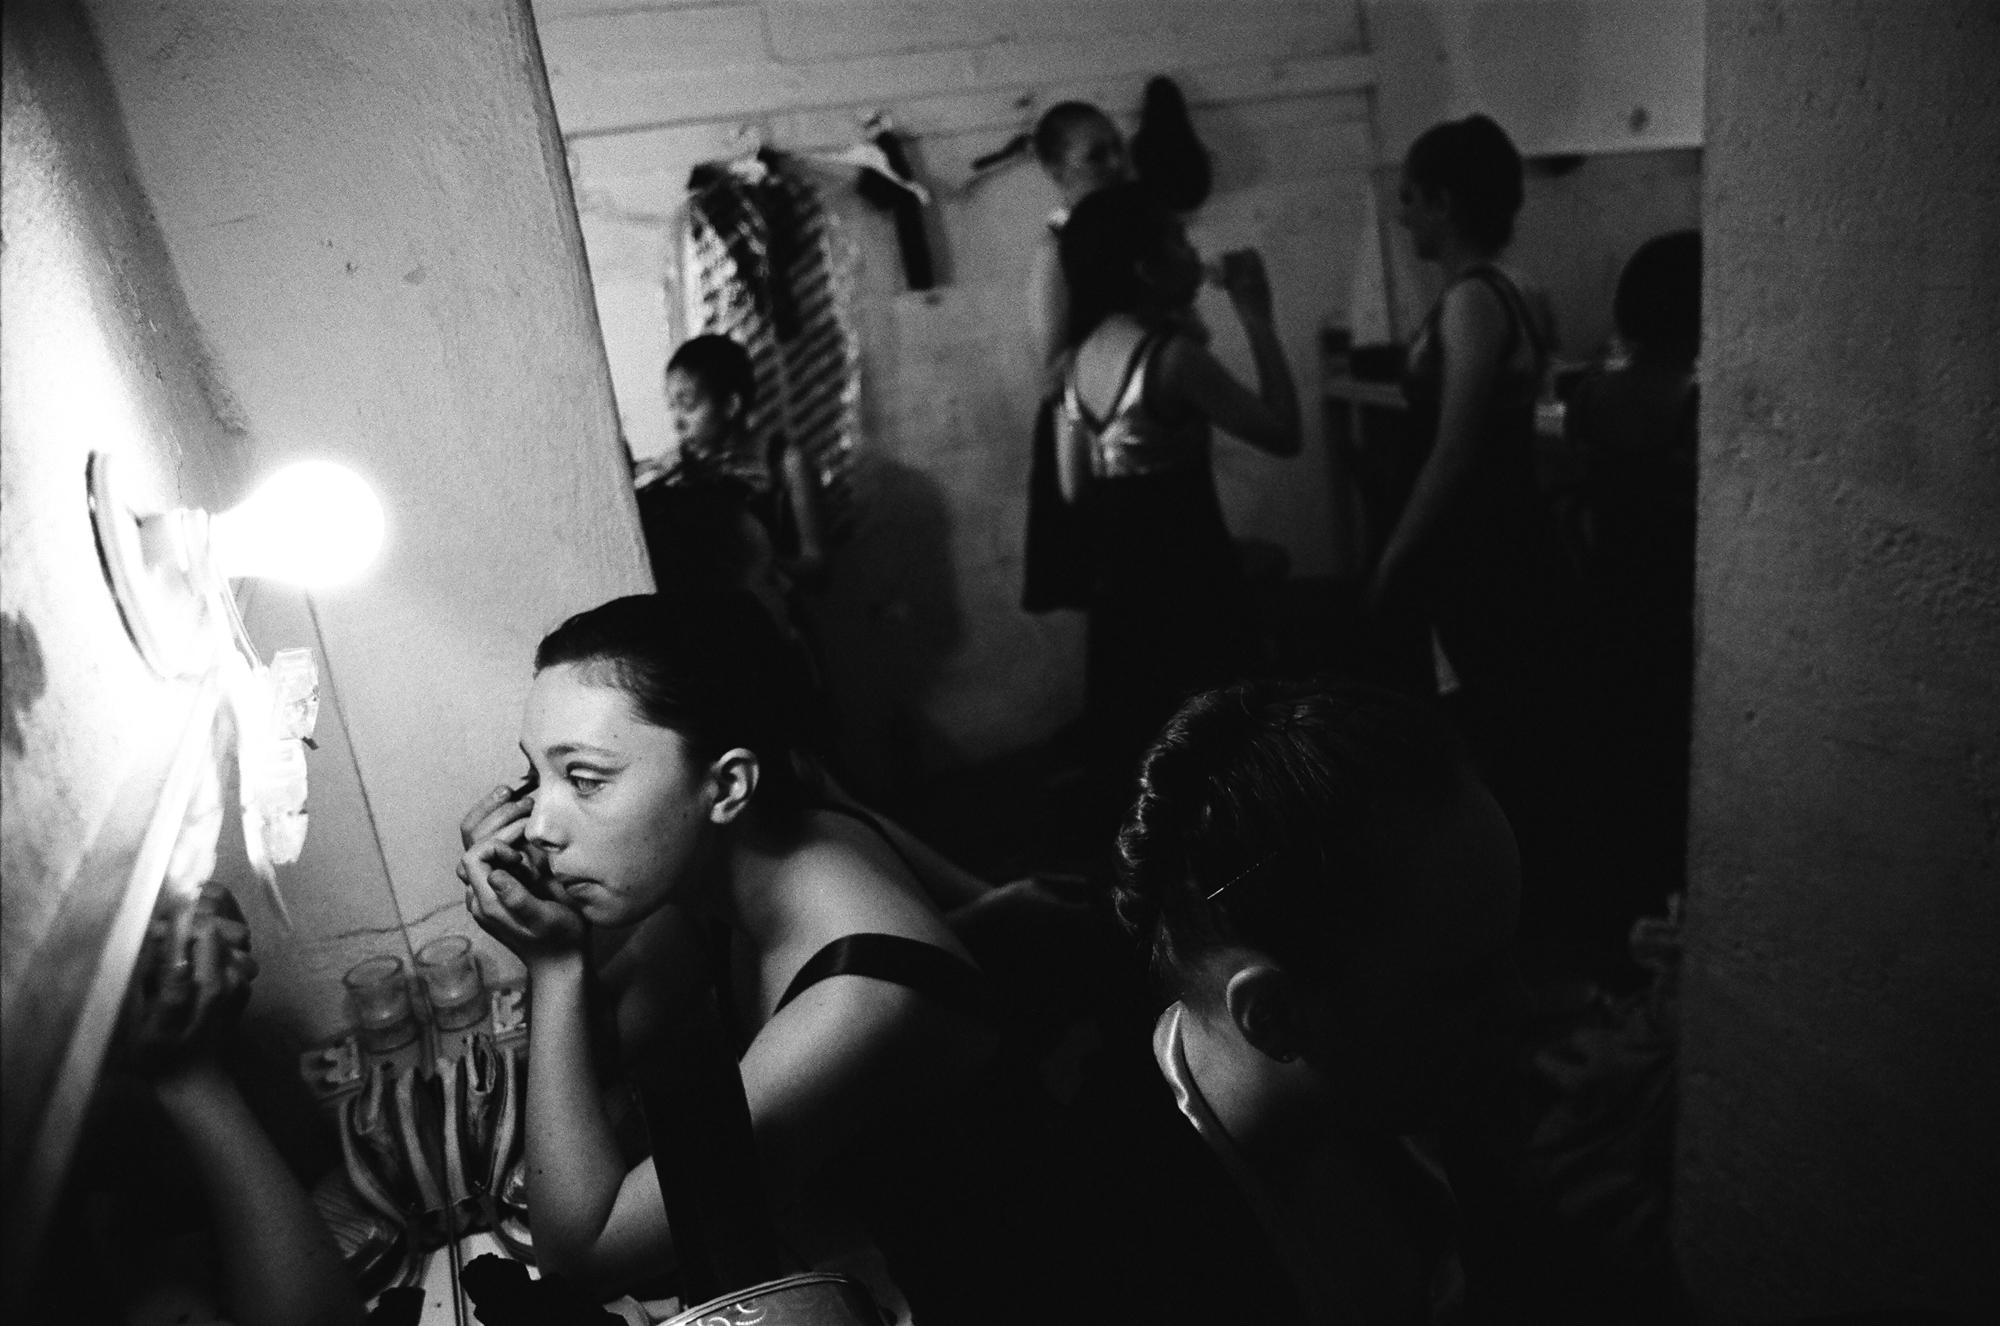 """Young dancers of the Alameda Civic Ballet prepare in the dressing room for a performance in the Kofman Theatre as part of """"United We Dance,"""" an event that ACB hosted to bring ten troupes together from the San Francisco Bay area."""